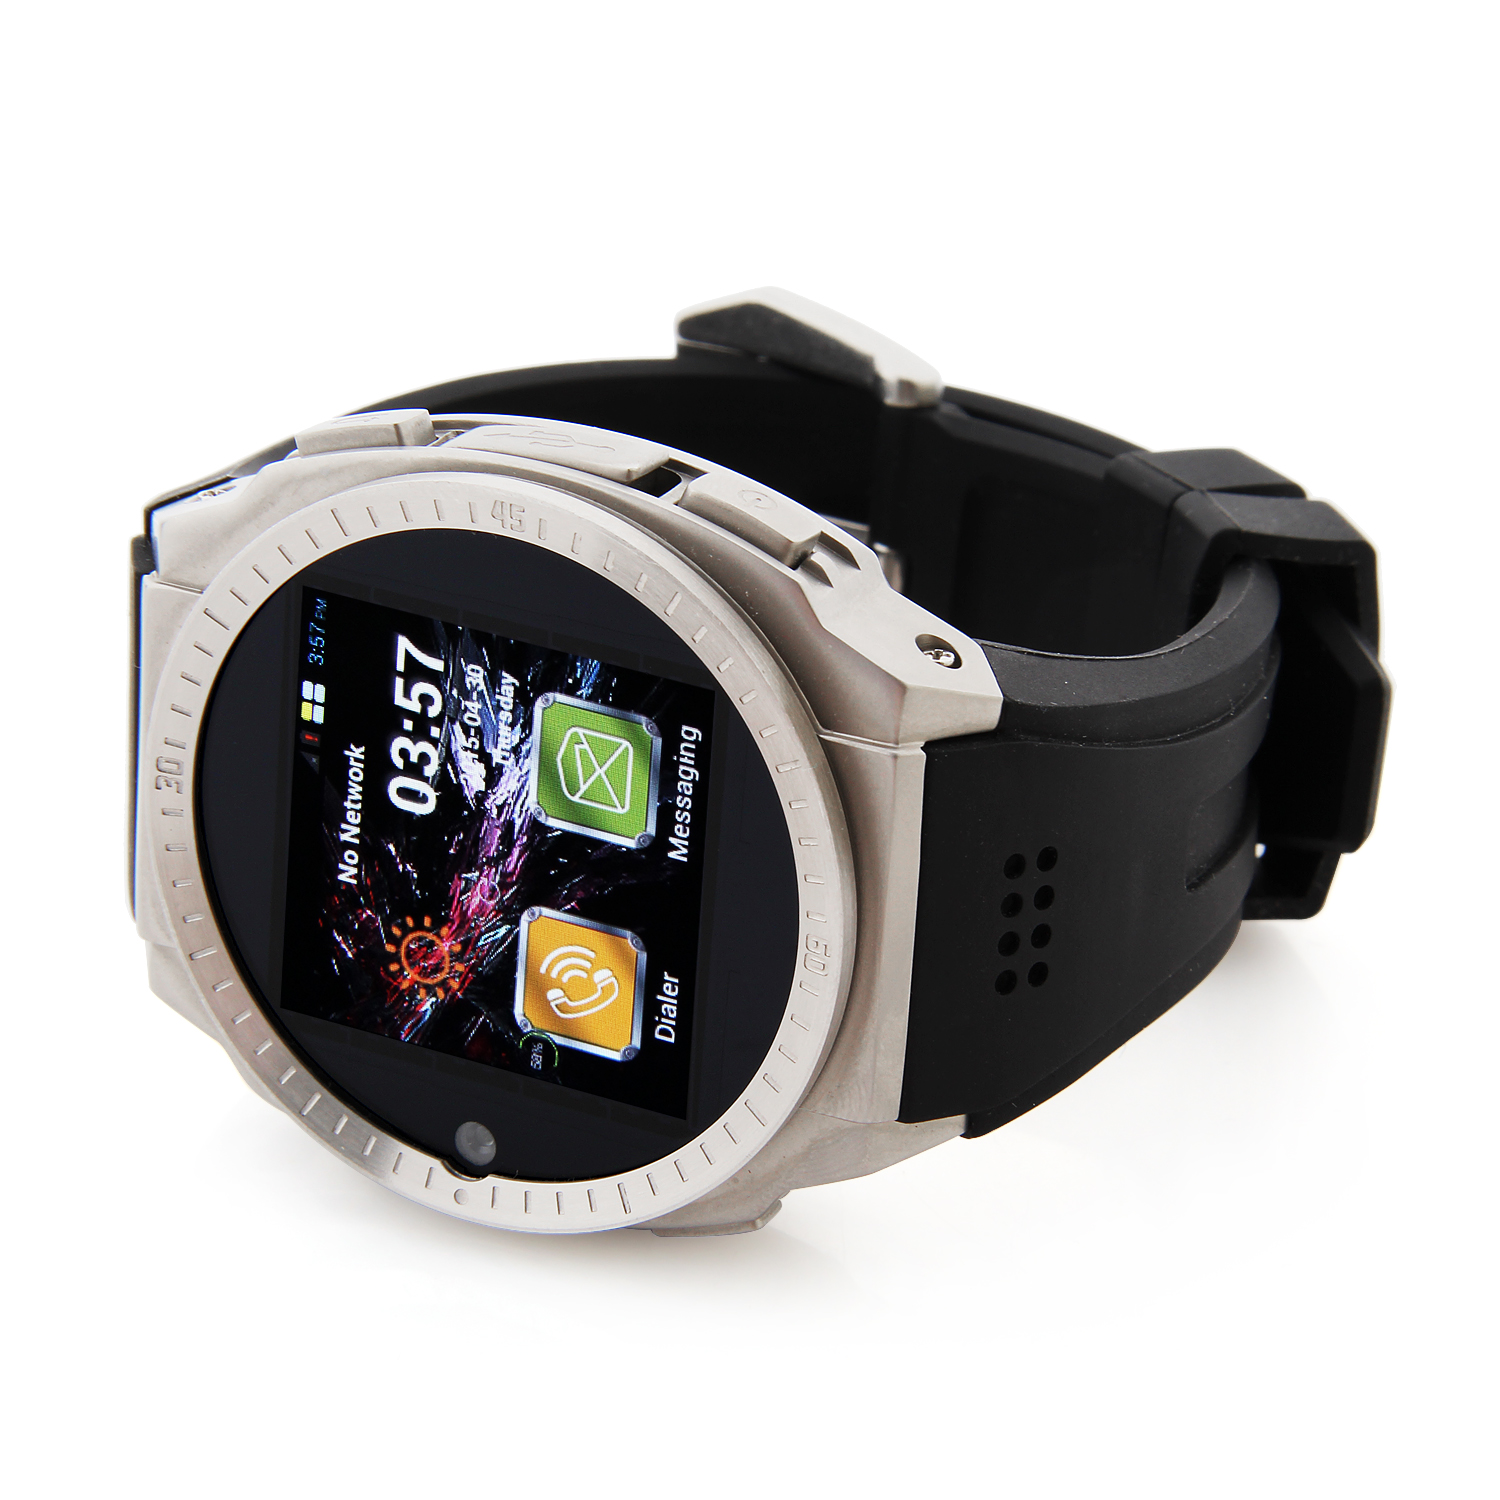 "TOP WATCH TW9001 MTK6572W Dual Core 1.55"" Touch Screen Phone Watch 3G GPS"